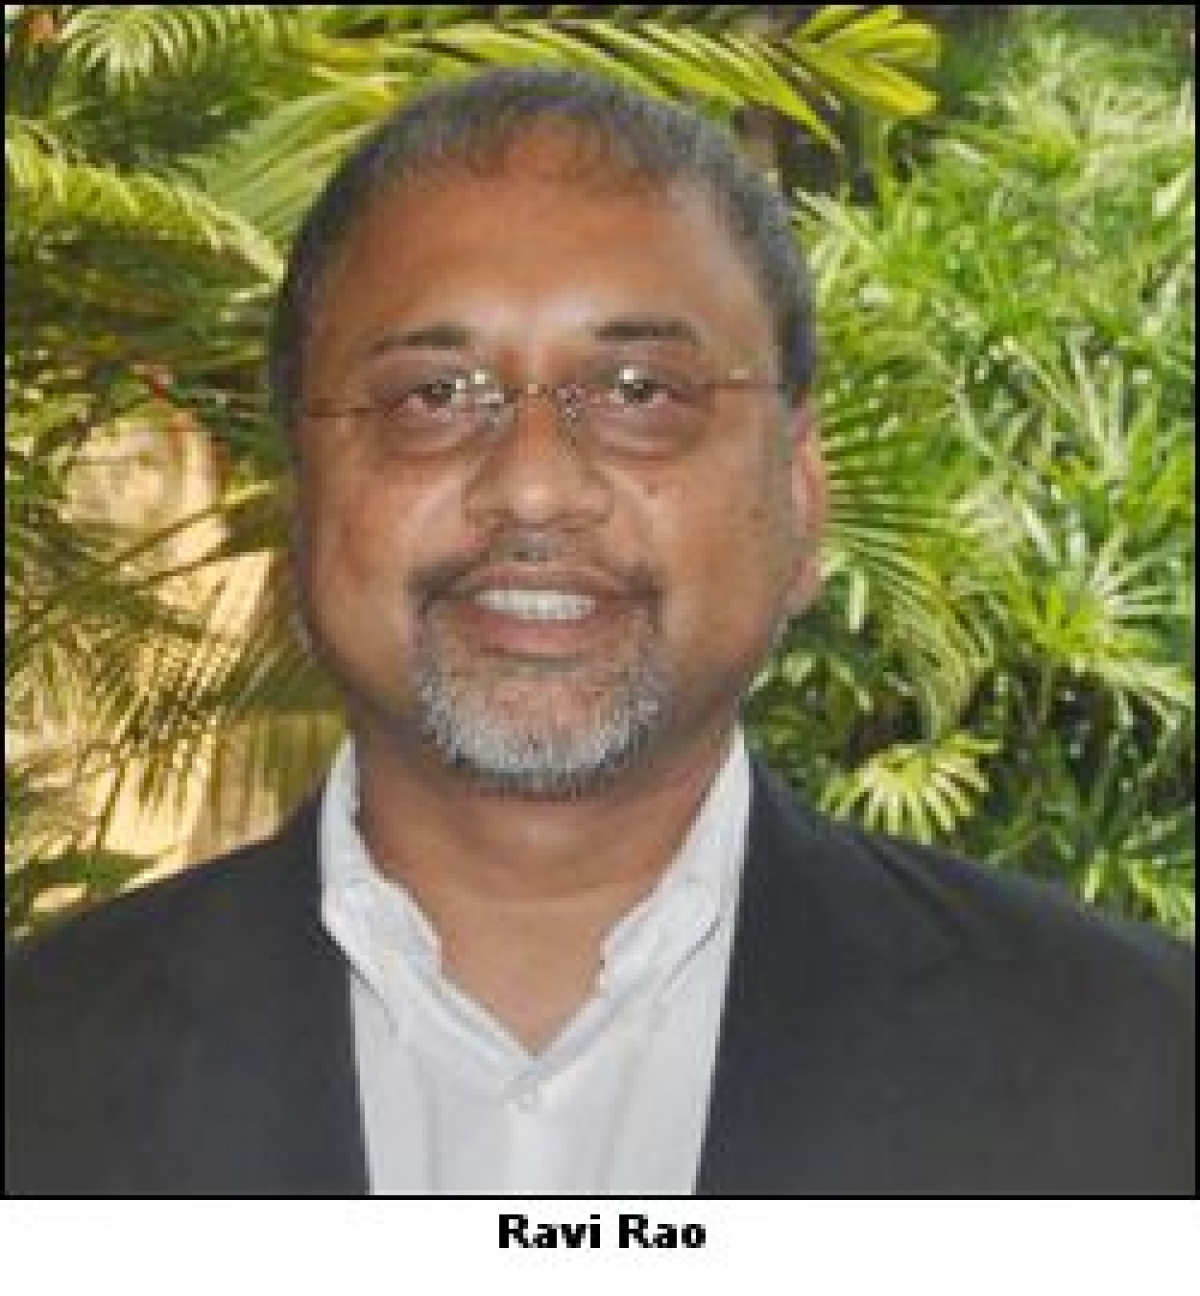 Ravi Rao is new MRUC chairman